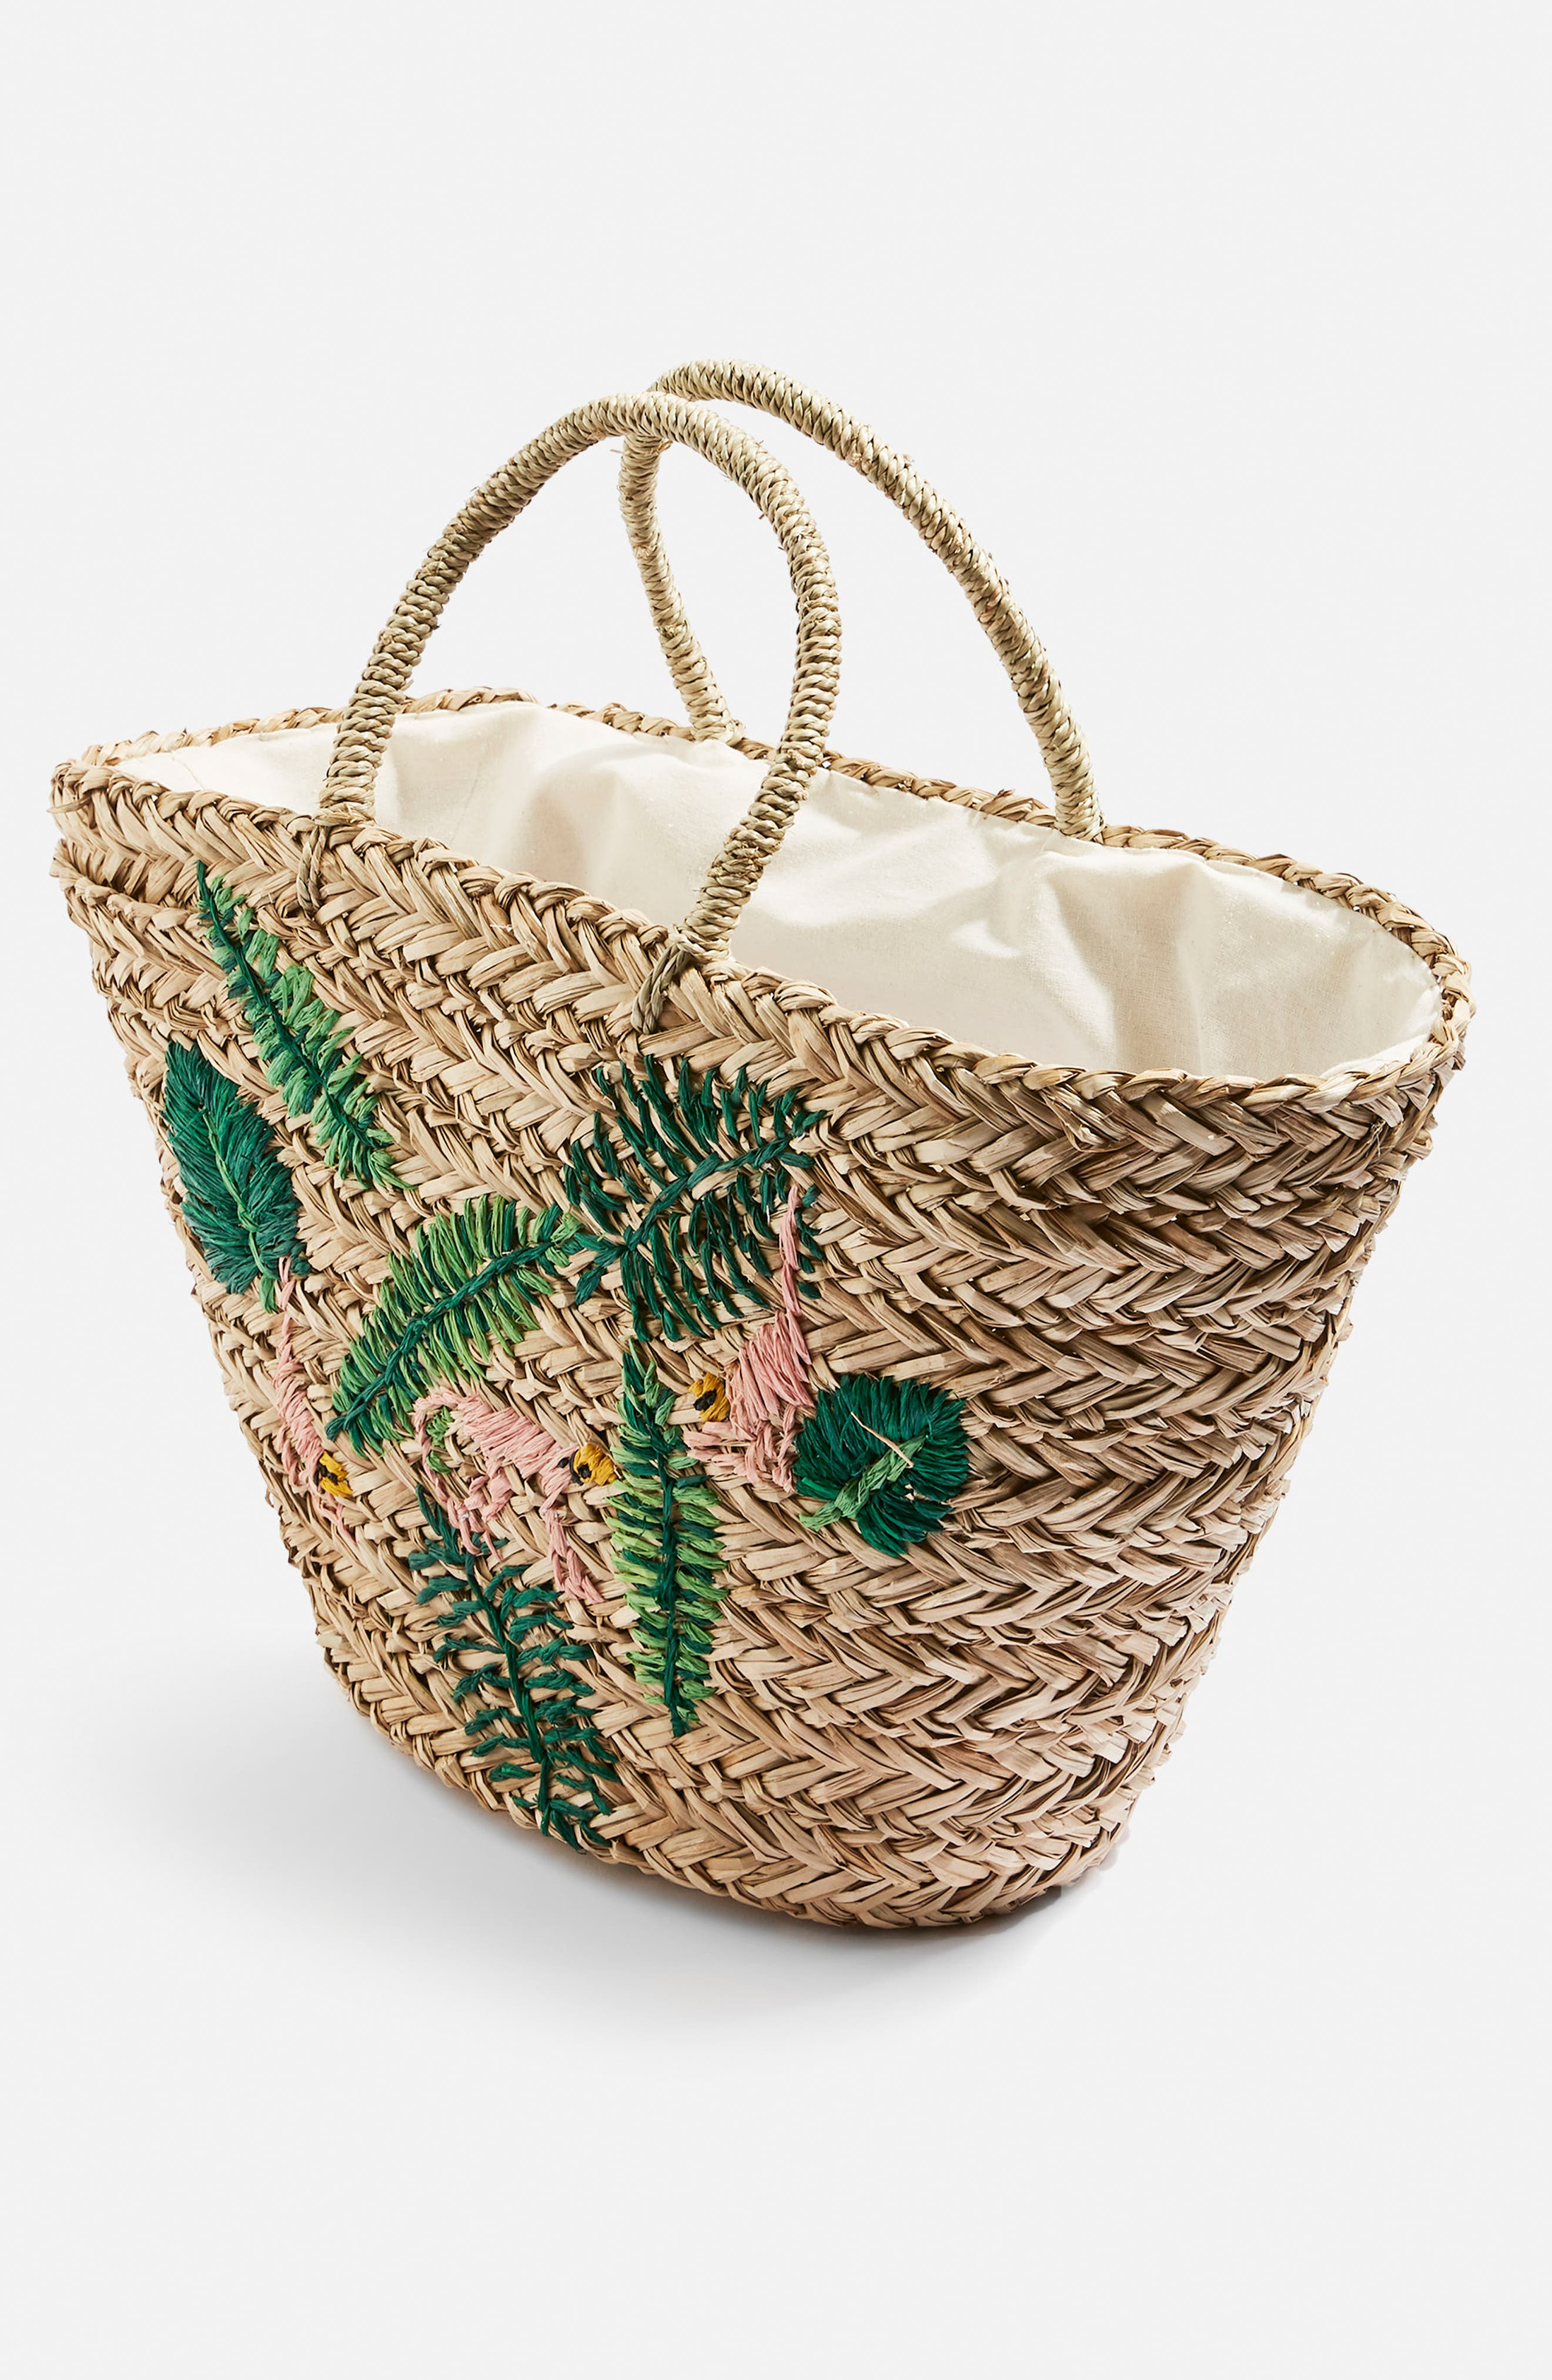 Barrio Monkey Embroidered Straw Tote Bag,                             Alternate thumbnail 3, color,                             250